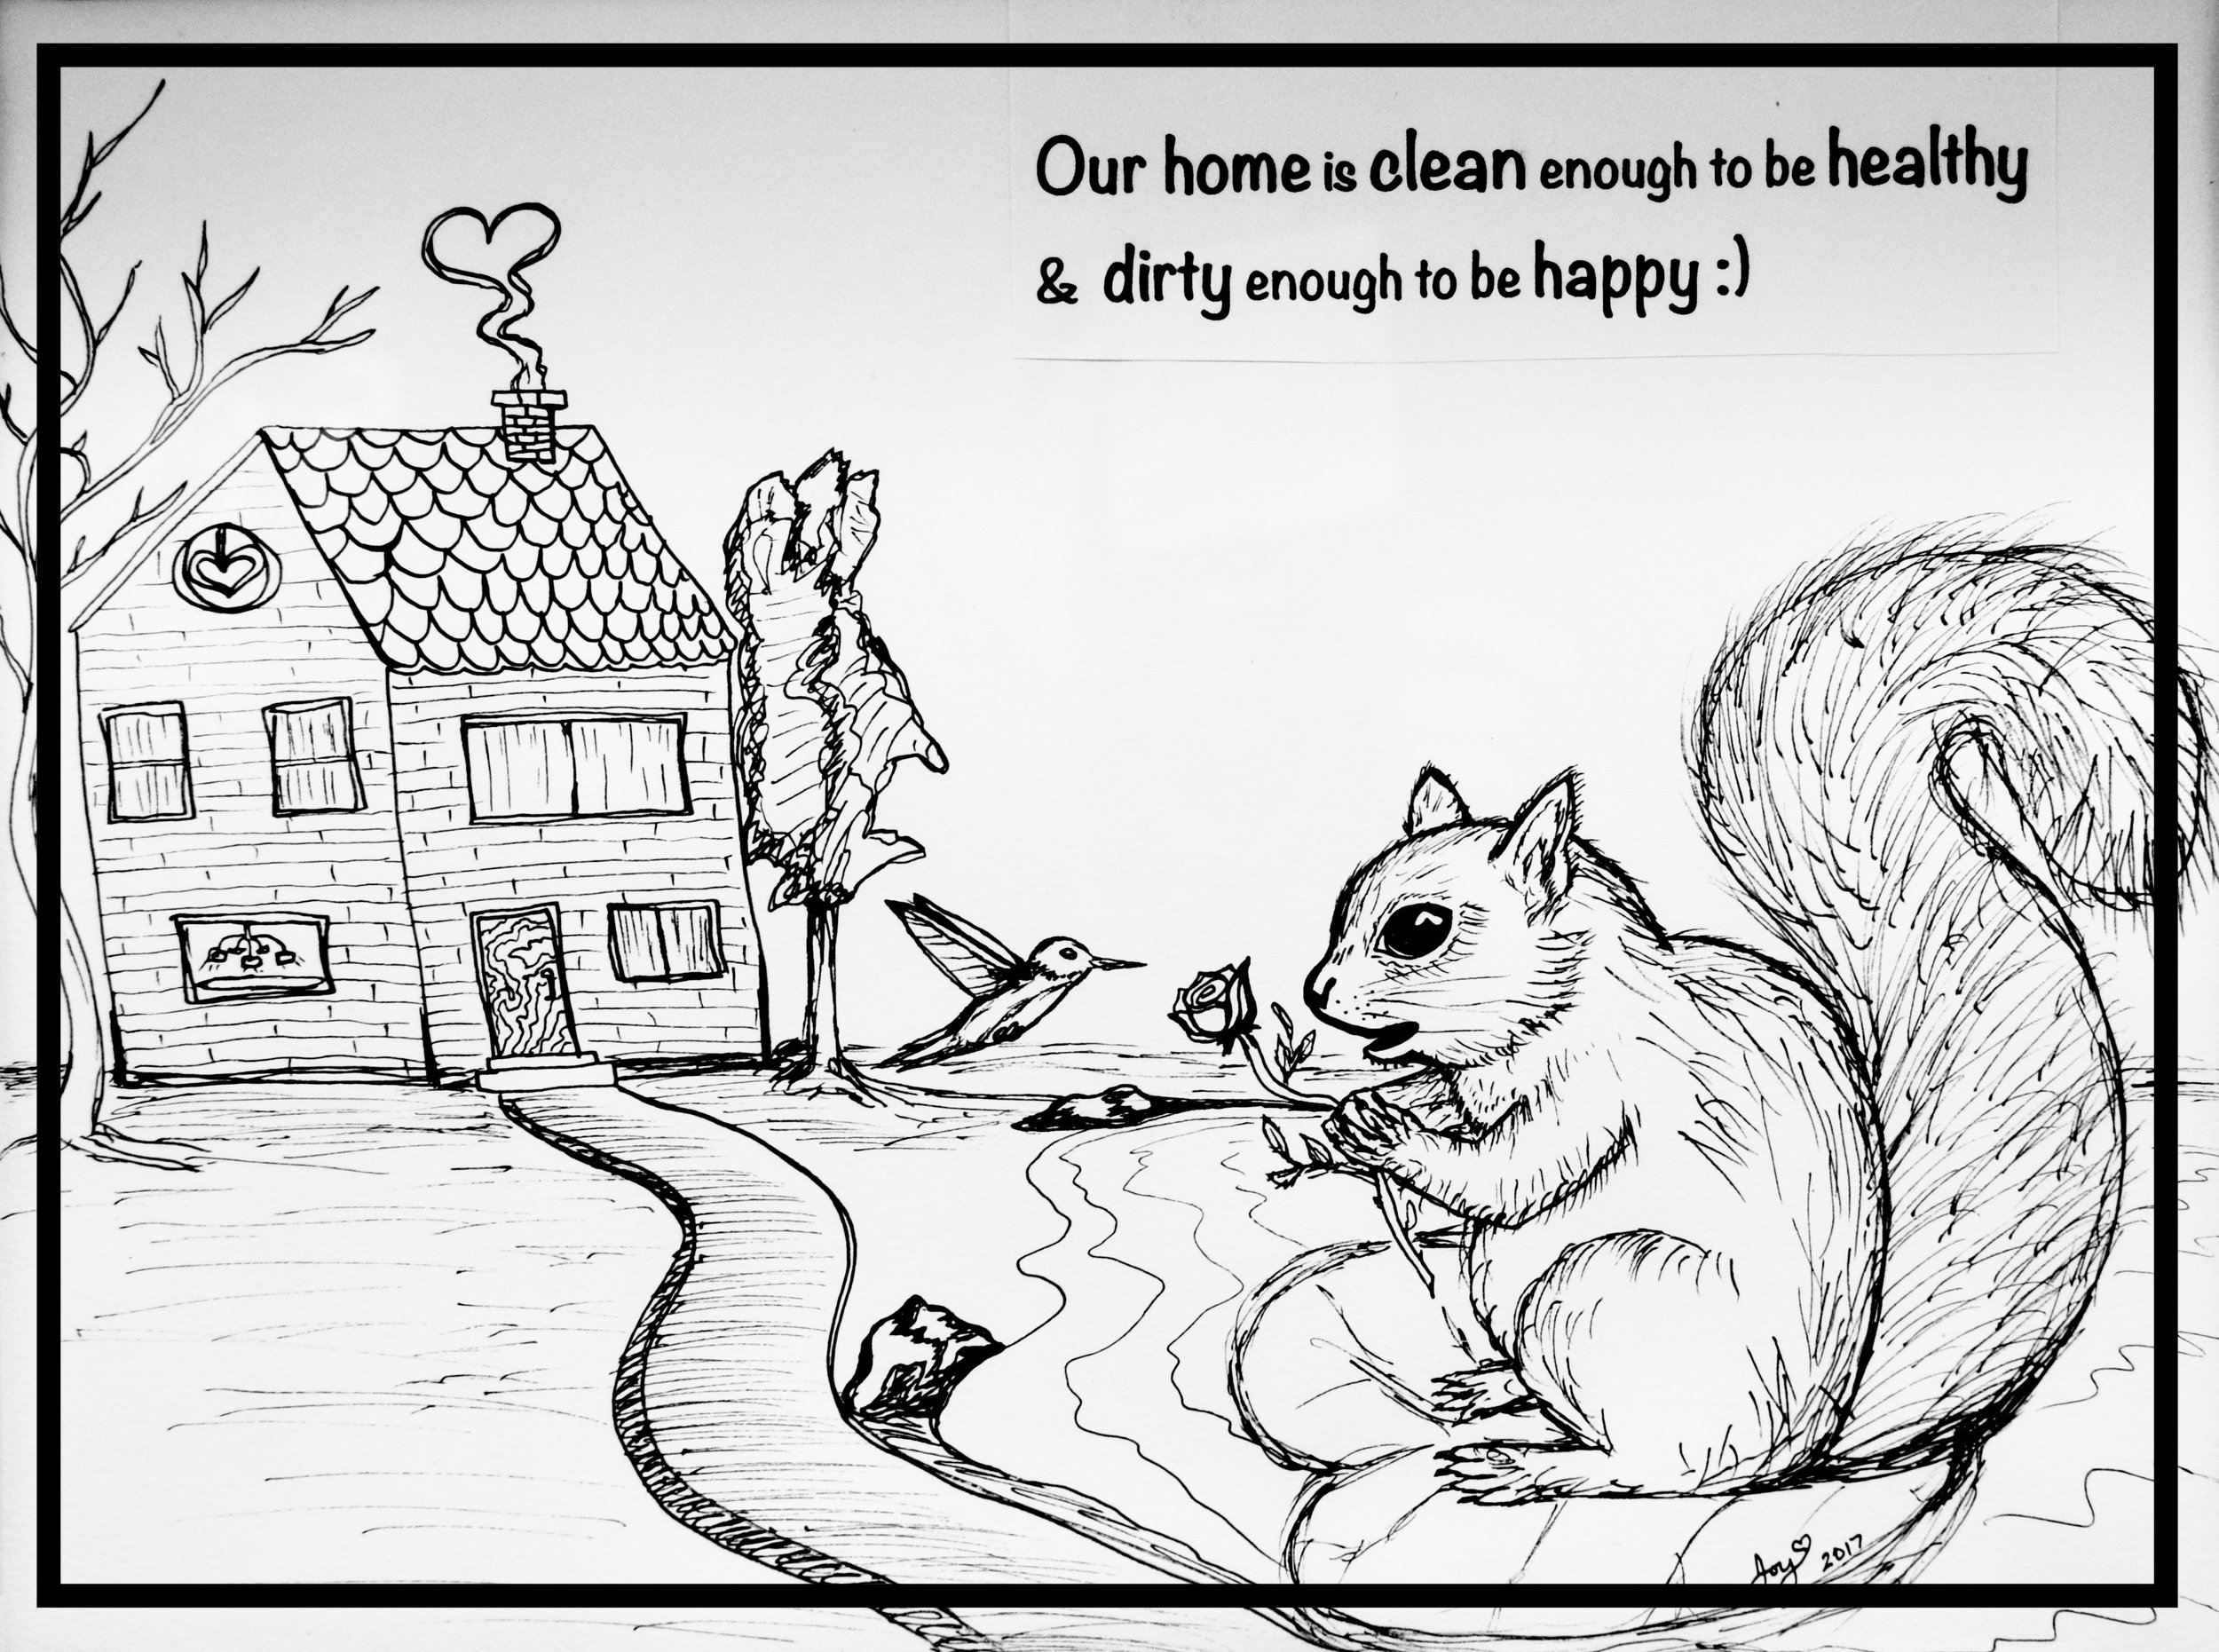 This is an ink sketch that I created near Thanksgiving last year with a printed favorite saying that hangs above the stove in the kitchen (I put it up just before family was coming over to visit). I felt I needed something on display to explain that I believe our home is clean enough and I know it's not perfect.As an outdoor enthusiast artistic free spirit I have many more important things to do than to keep a spotless home. Life's too short, right?